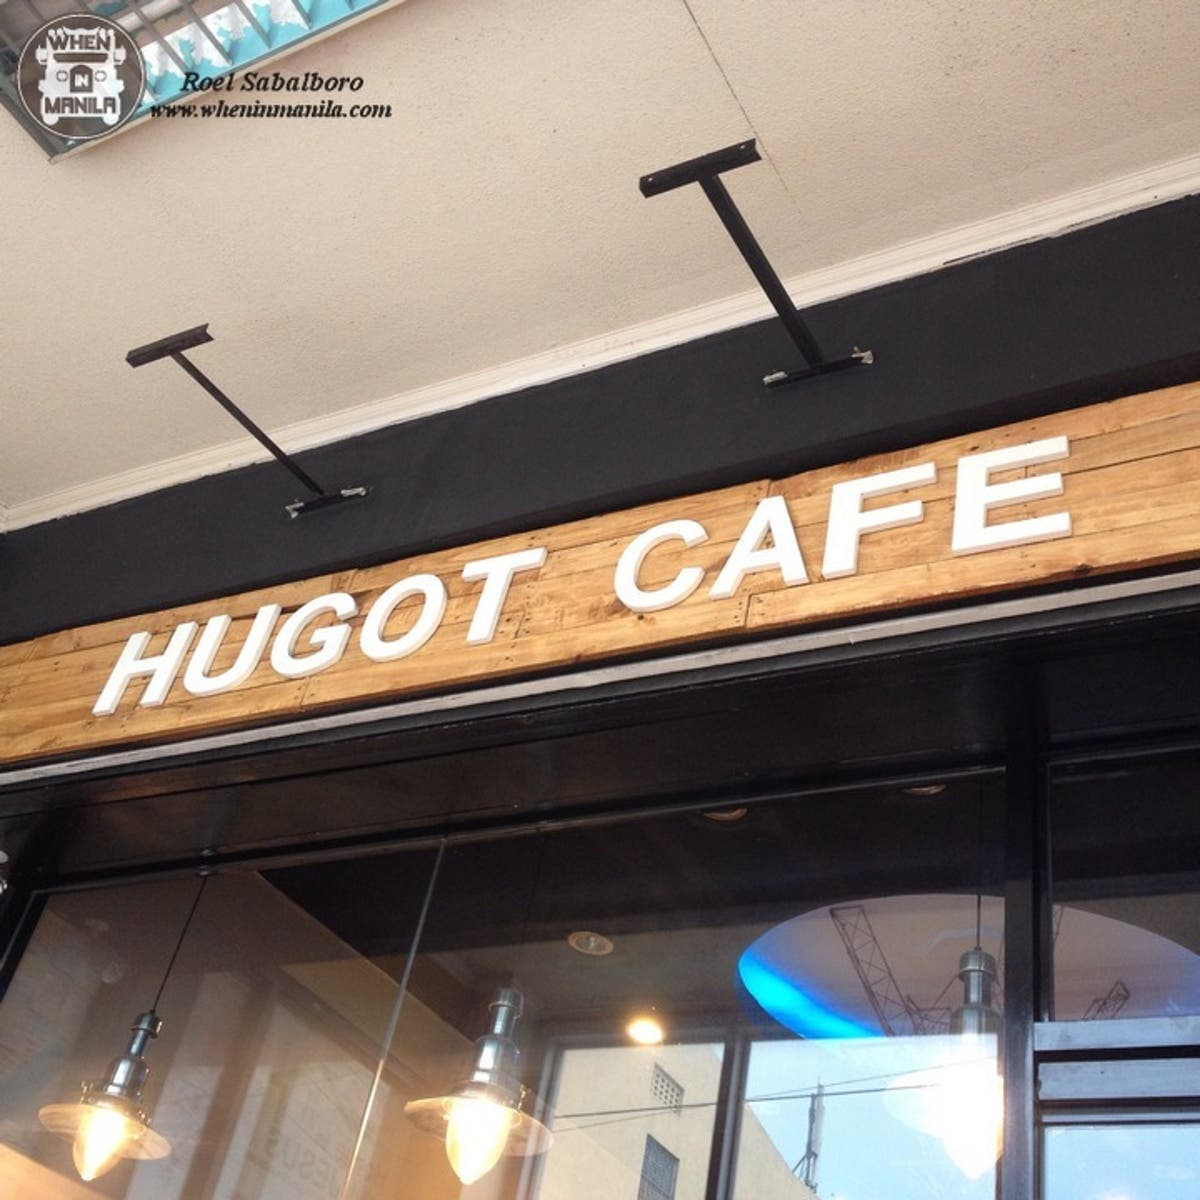 Hugot Cafe: Where You Can Hugot All You Want - When In Manila